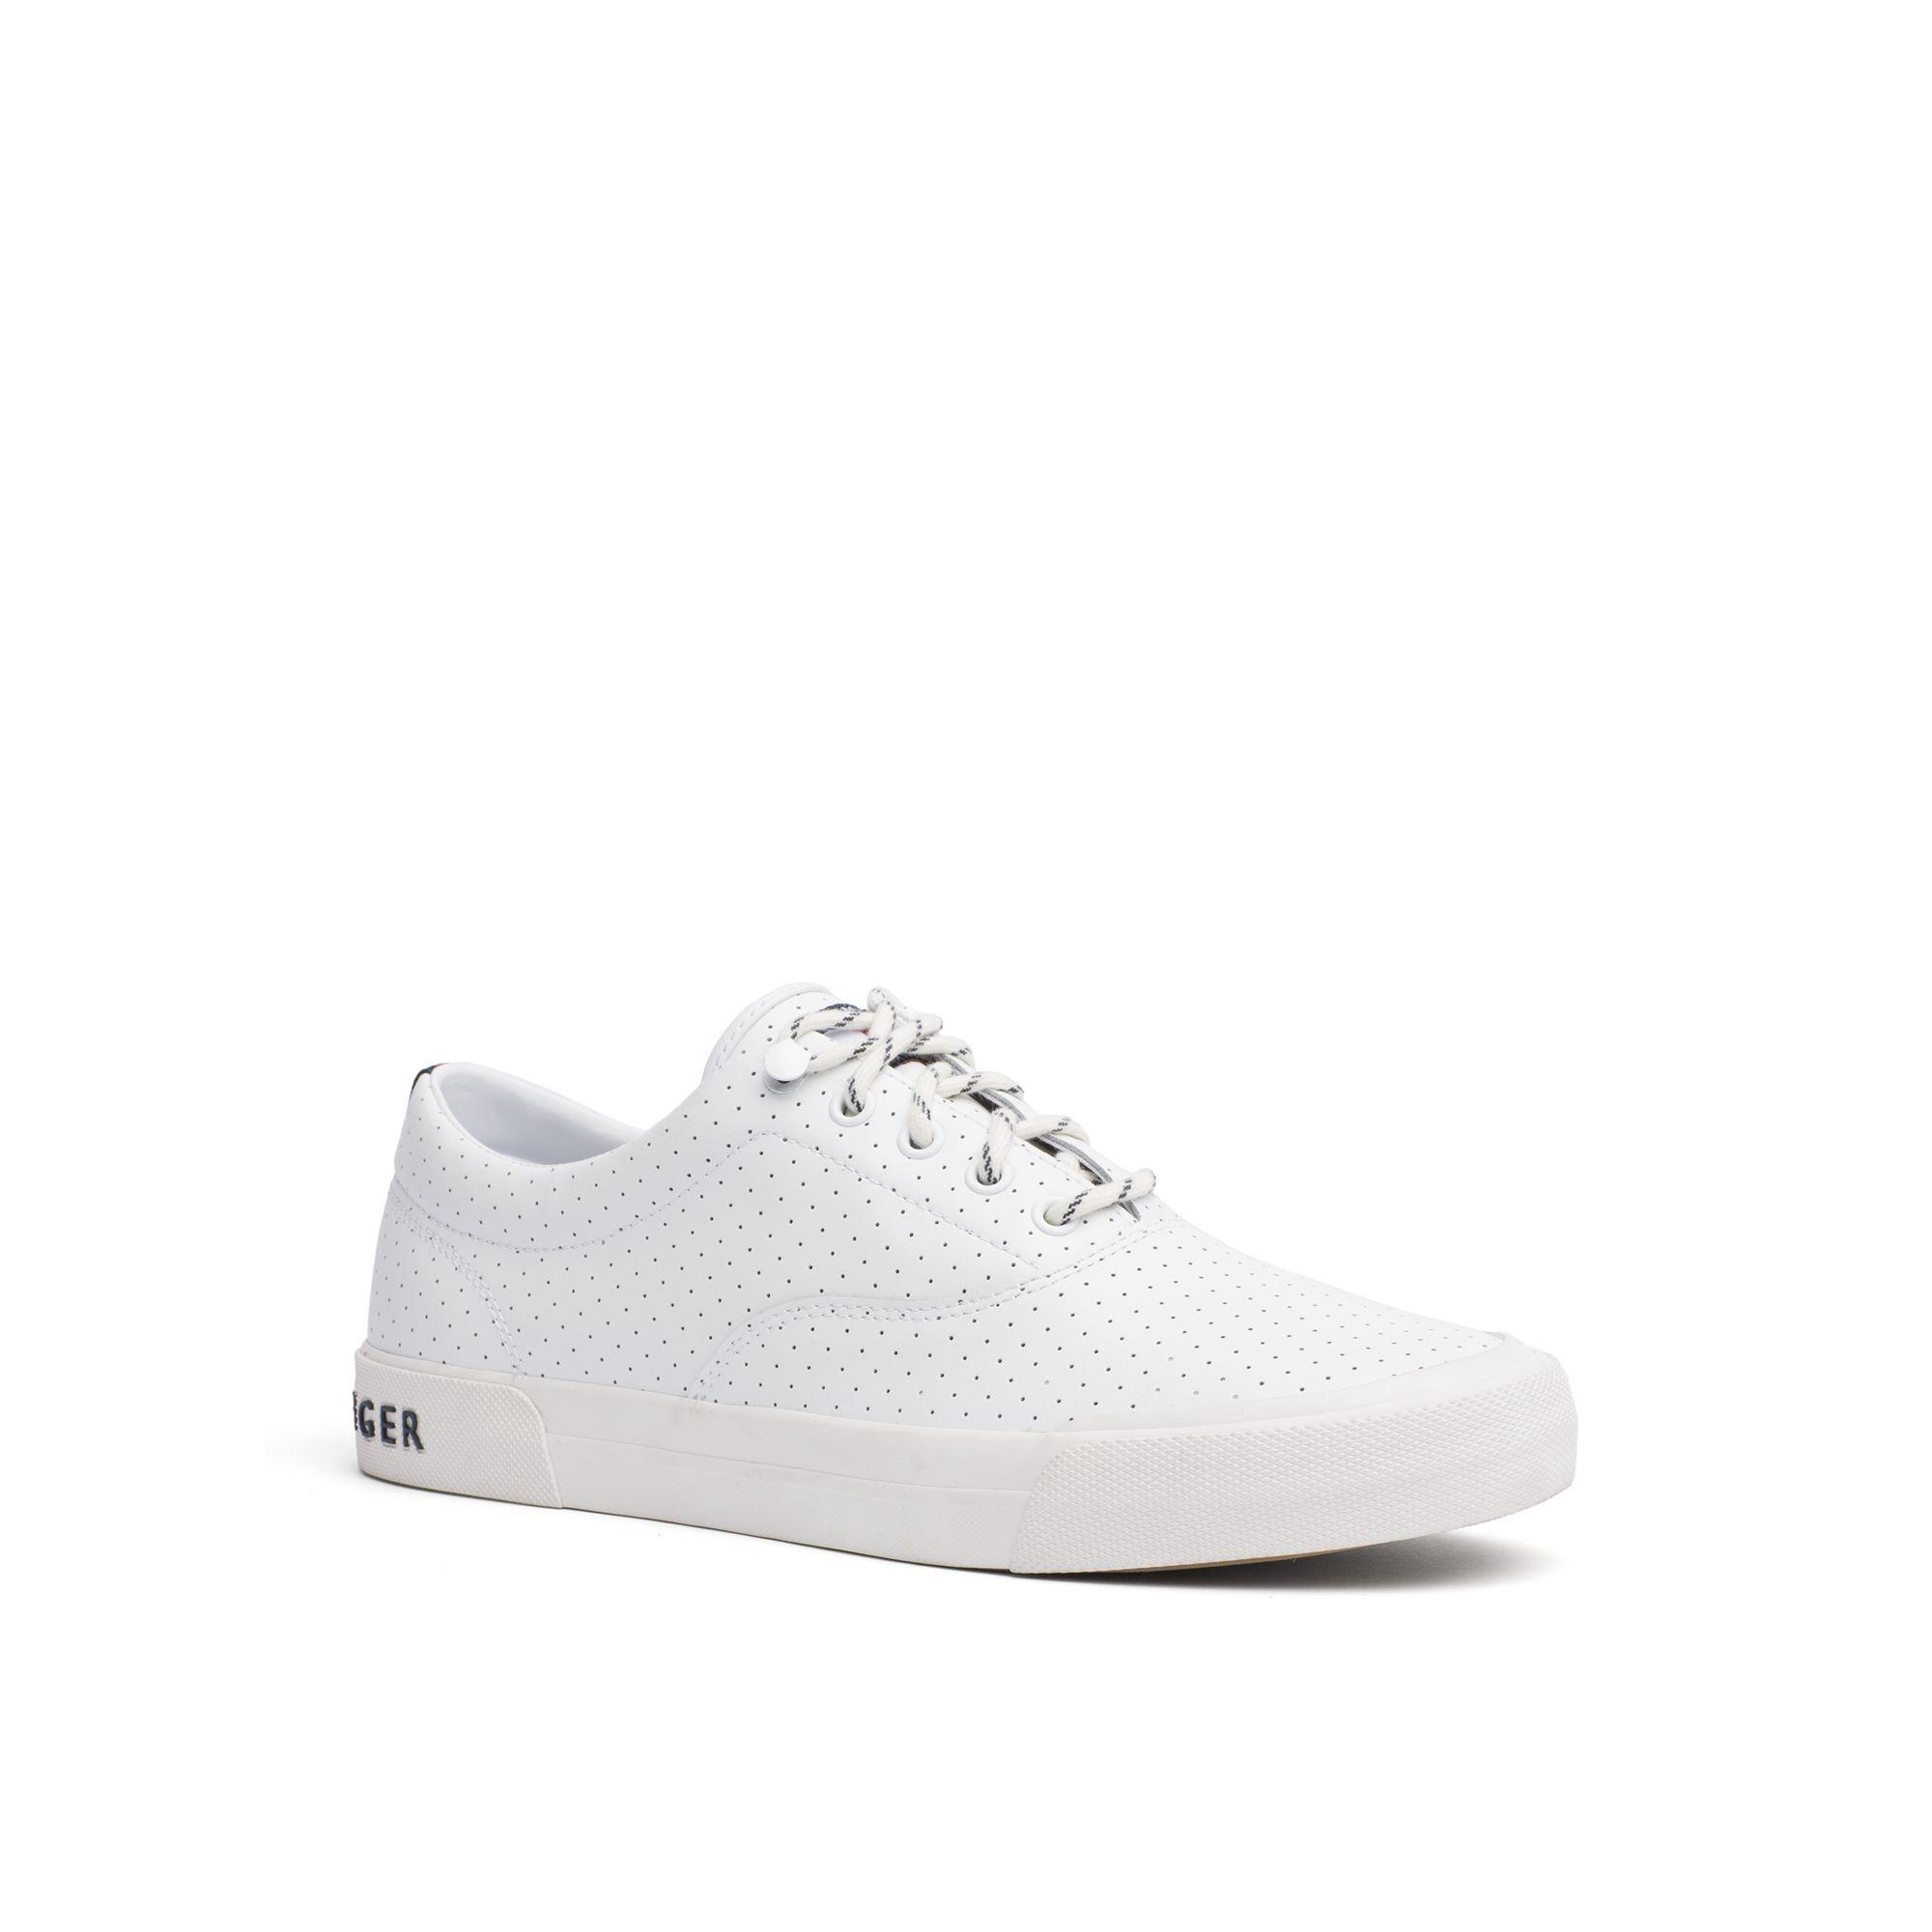 134dc1c74b4fc1 Tommy Hilfiger Perforated Leather Sneaker - White